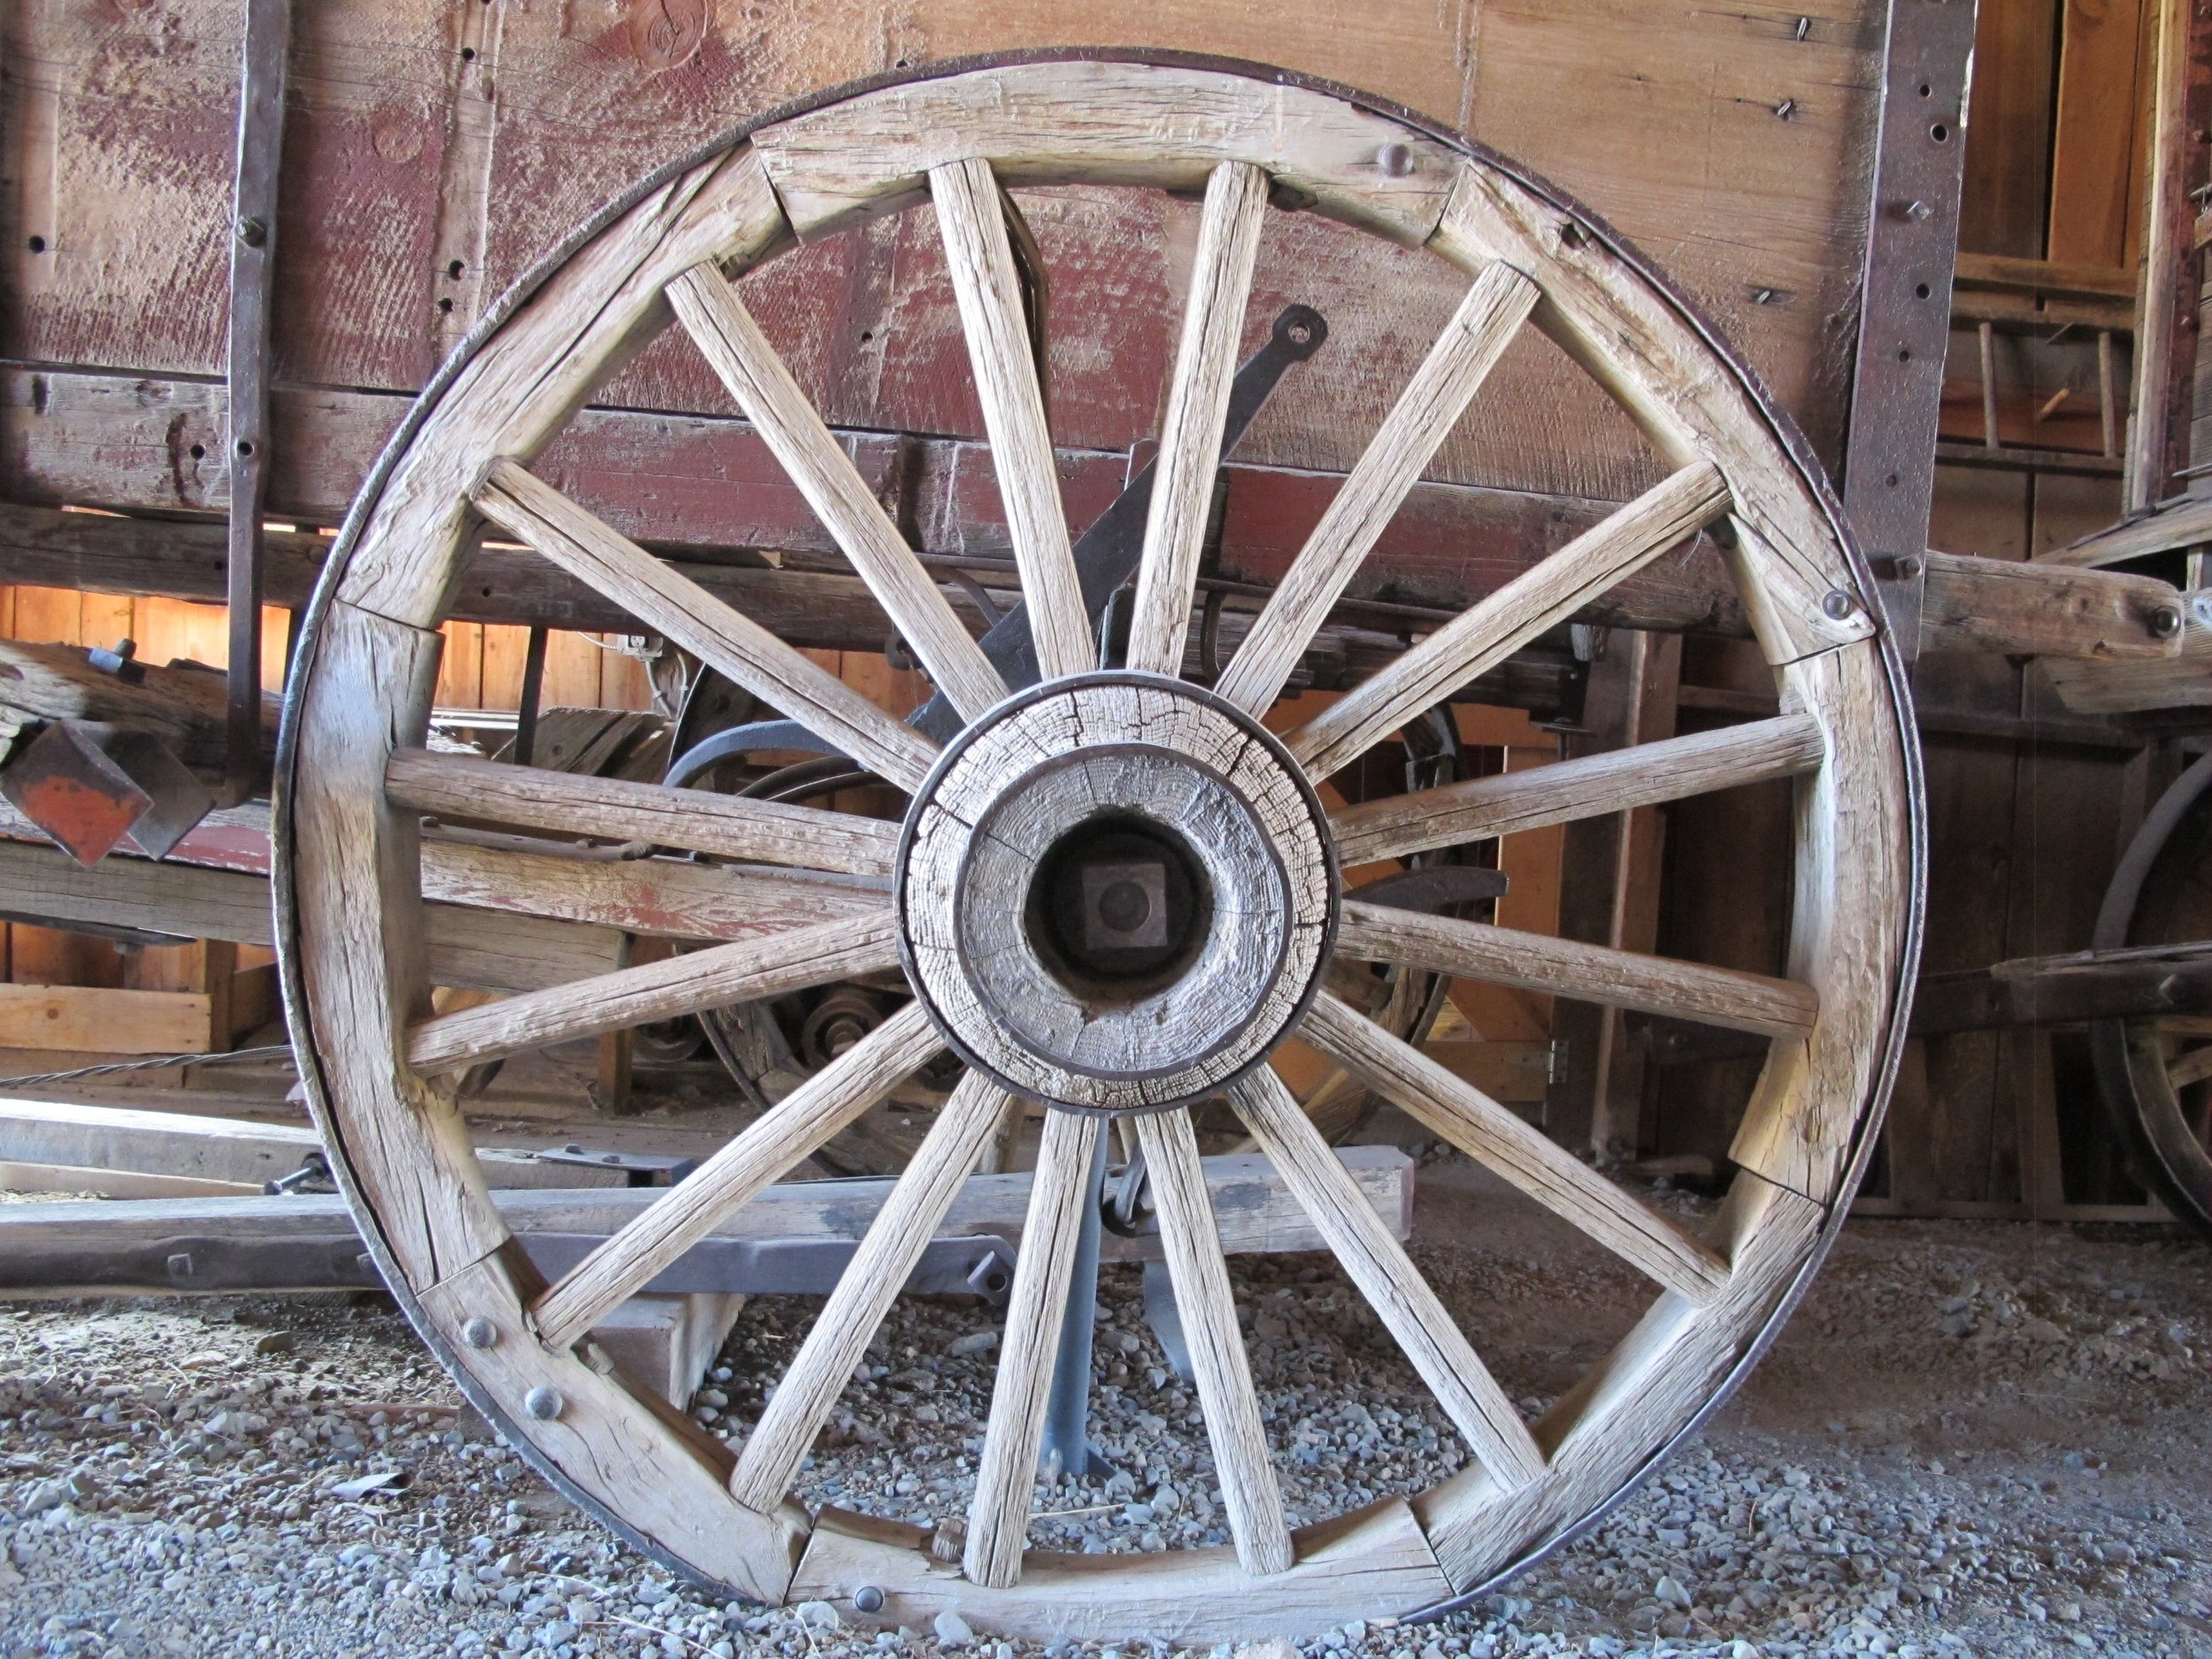 Wagon Wheel - where's the chocolate?